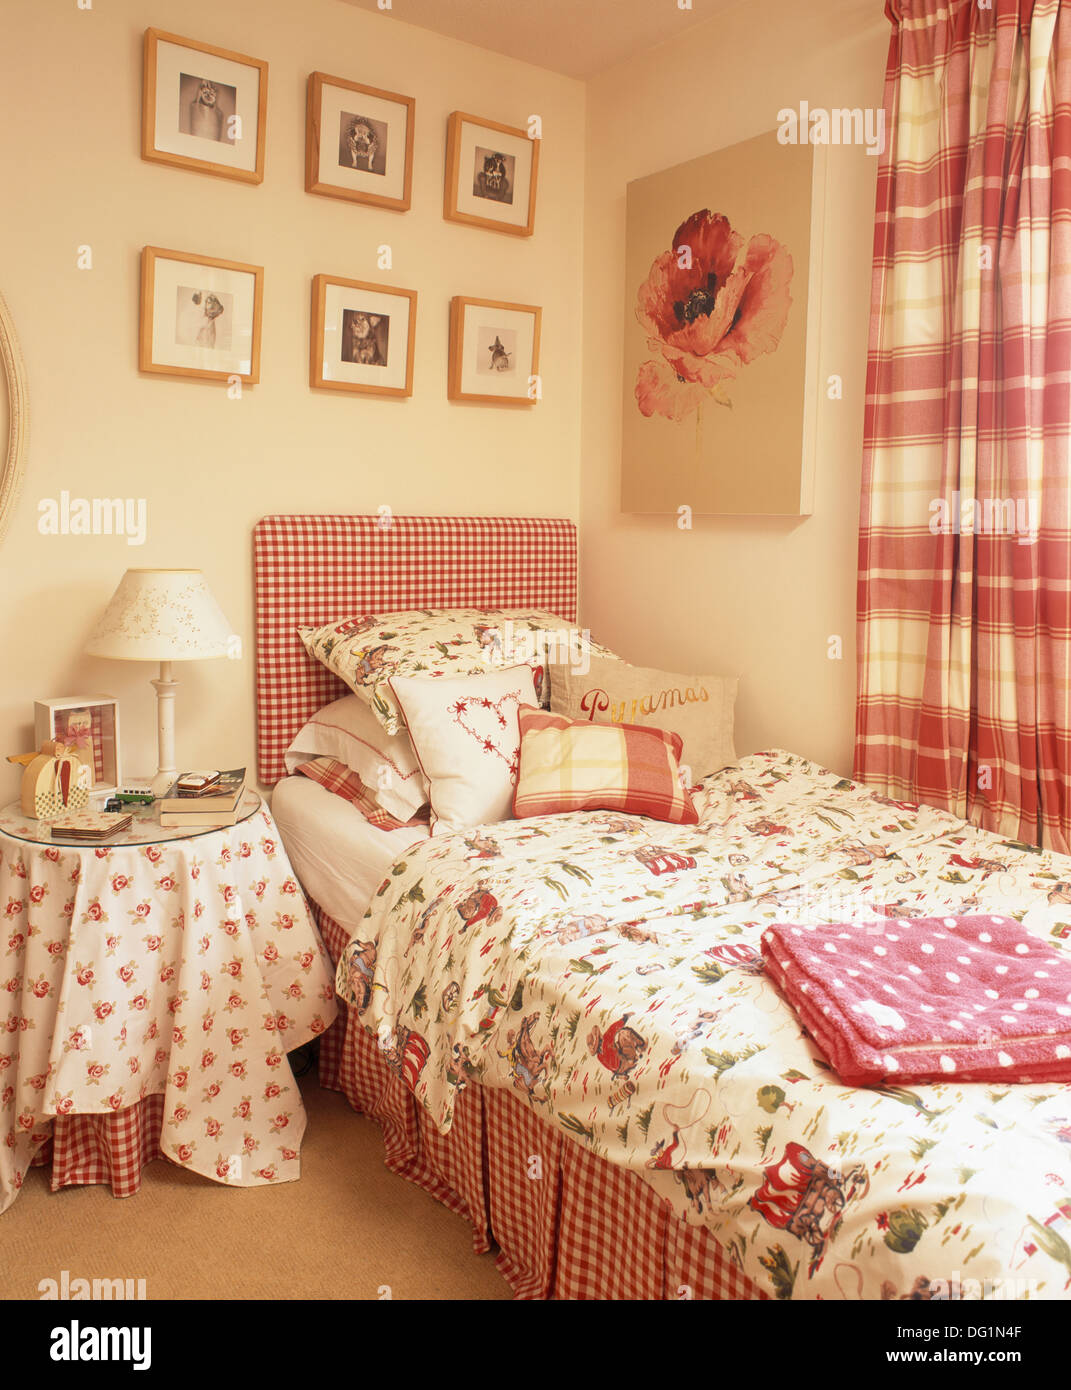 cath kidston cowboy duvet cover and pillow in teenager s bedroom